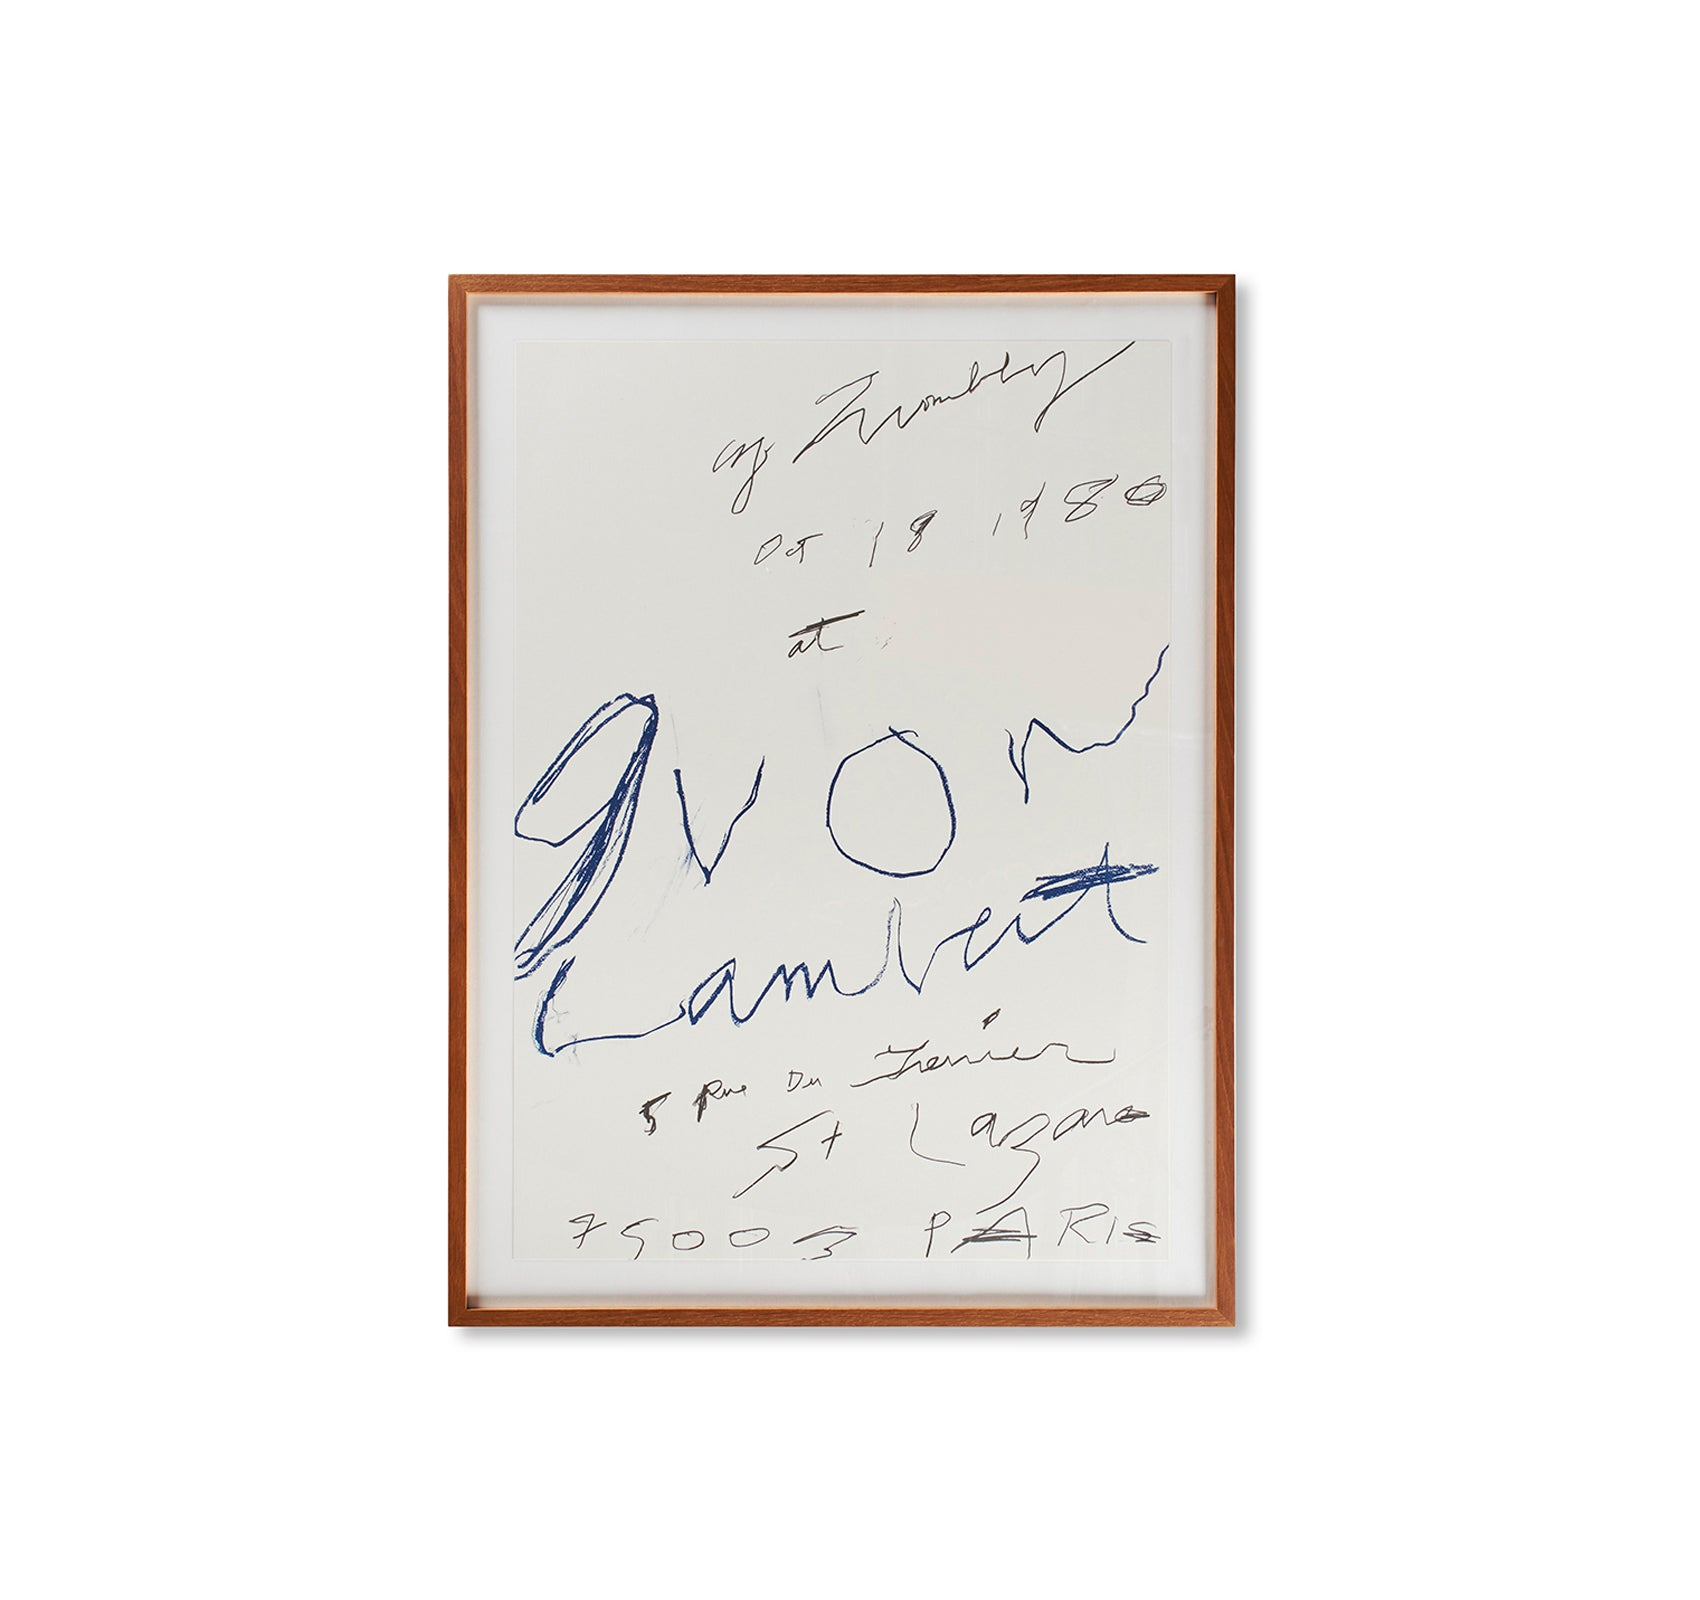 PRINT (1980) by Cy Twombly